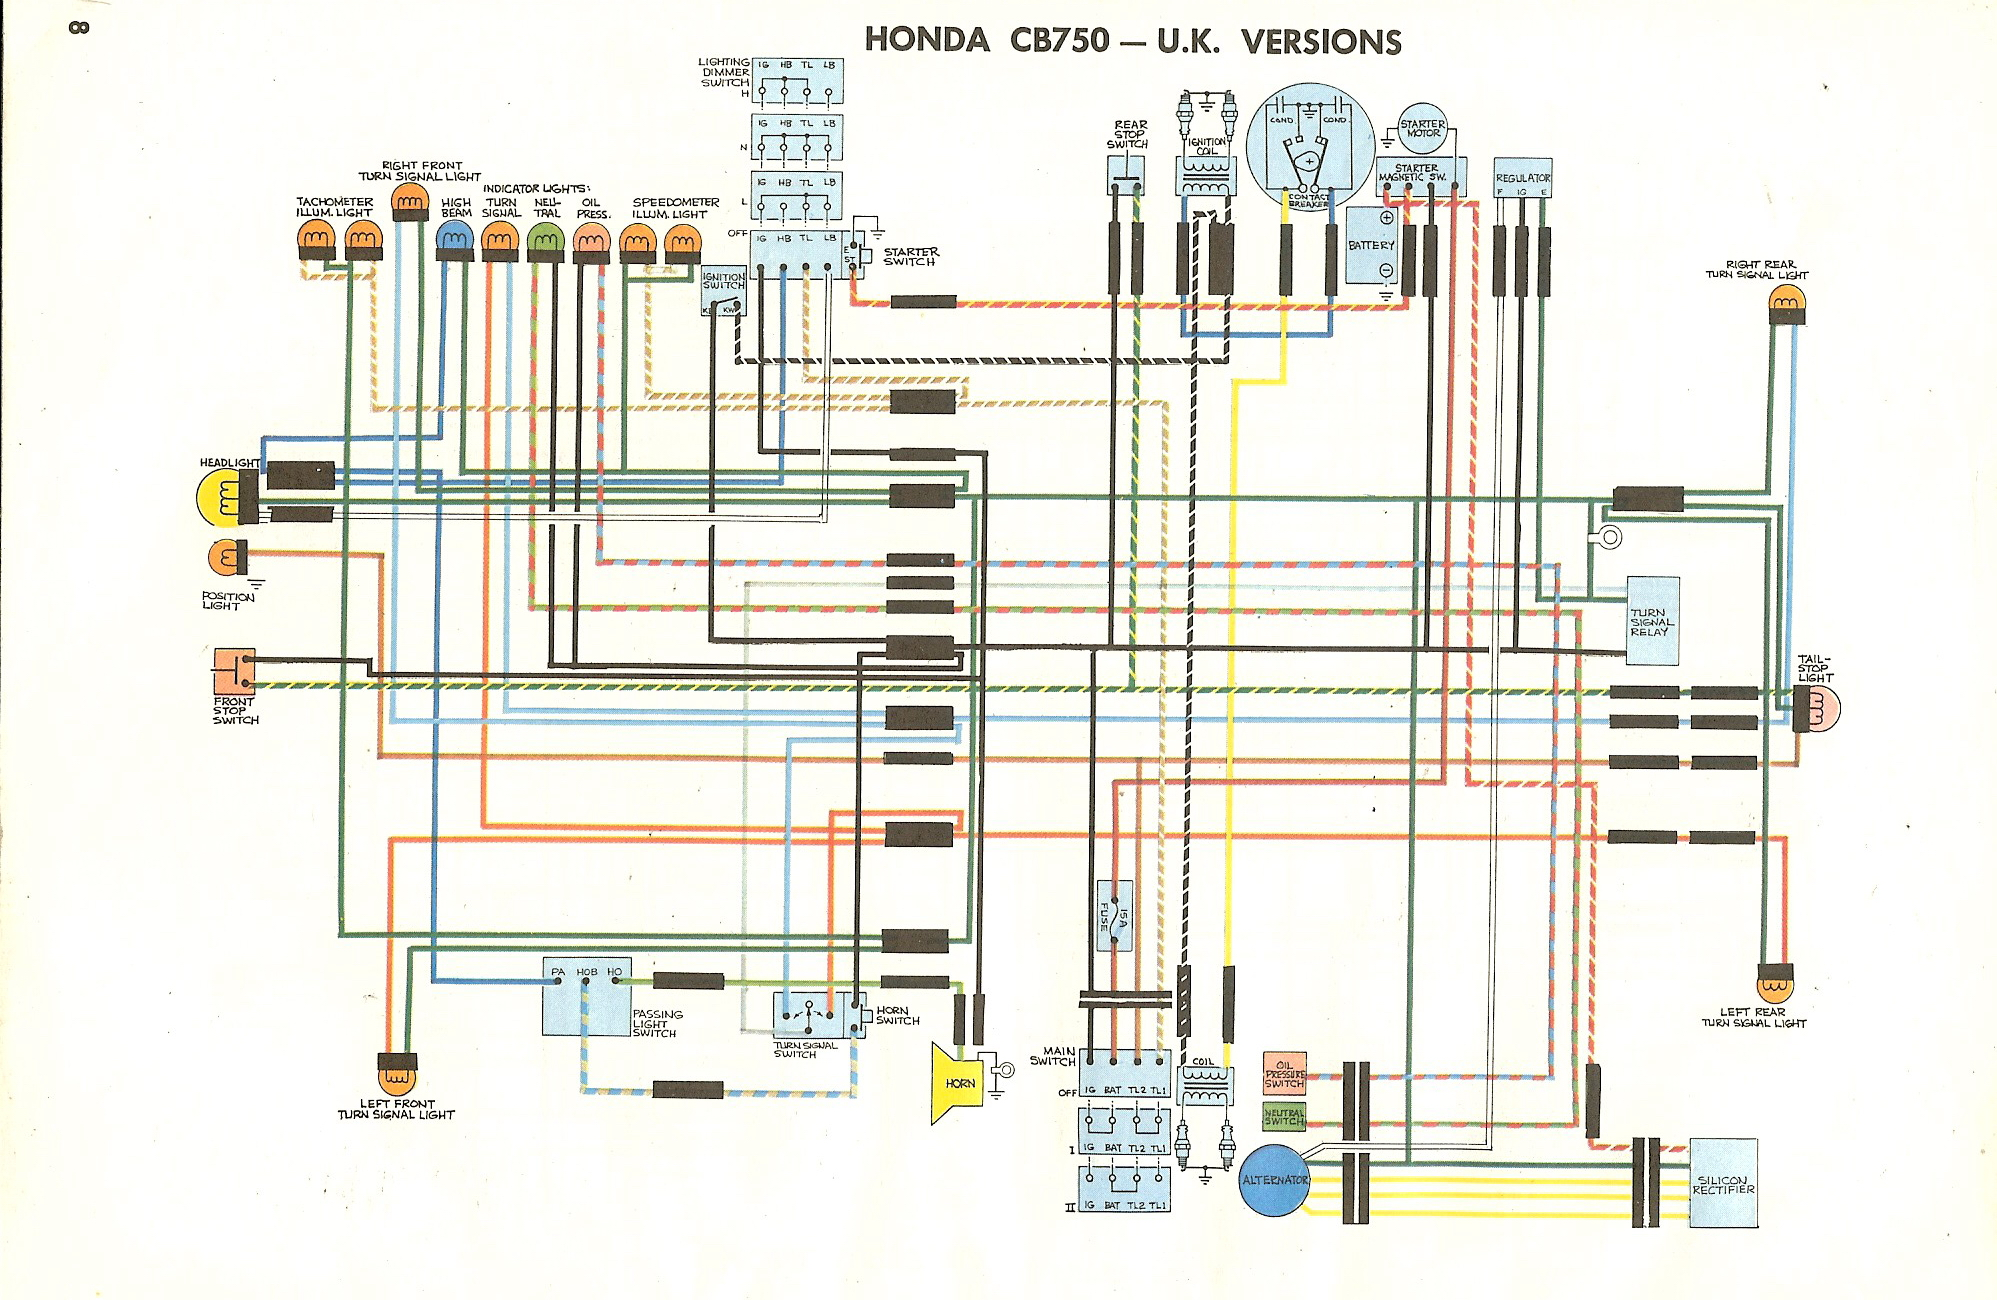 WD750UK 1978 honda cb750 wiring diagram honda cb 700 ignition wire diagram 1978 honda cb125s wiring diagrams at suagrazia.org